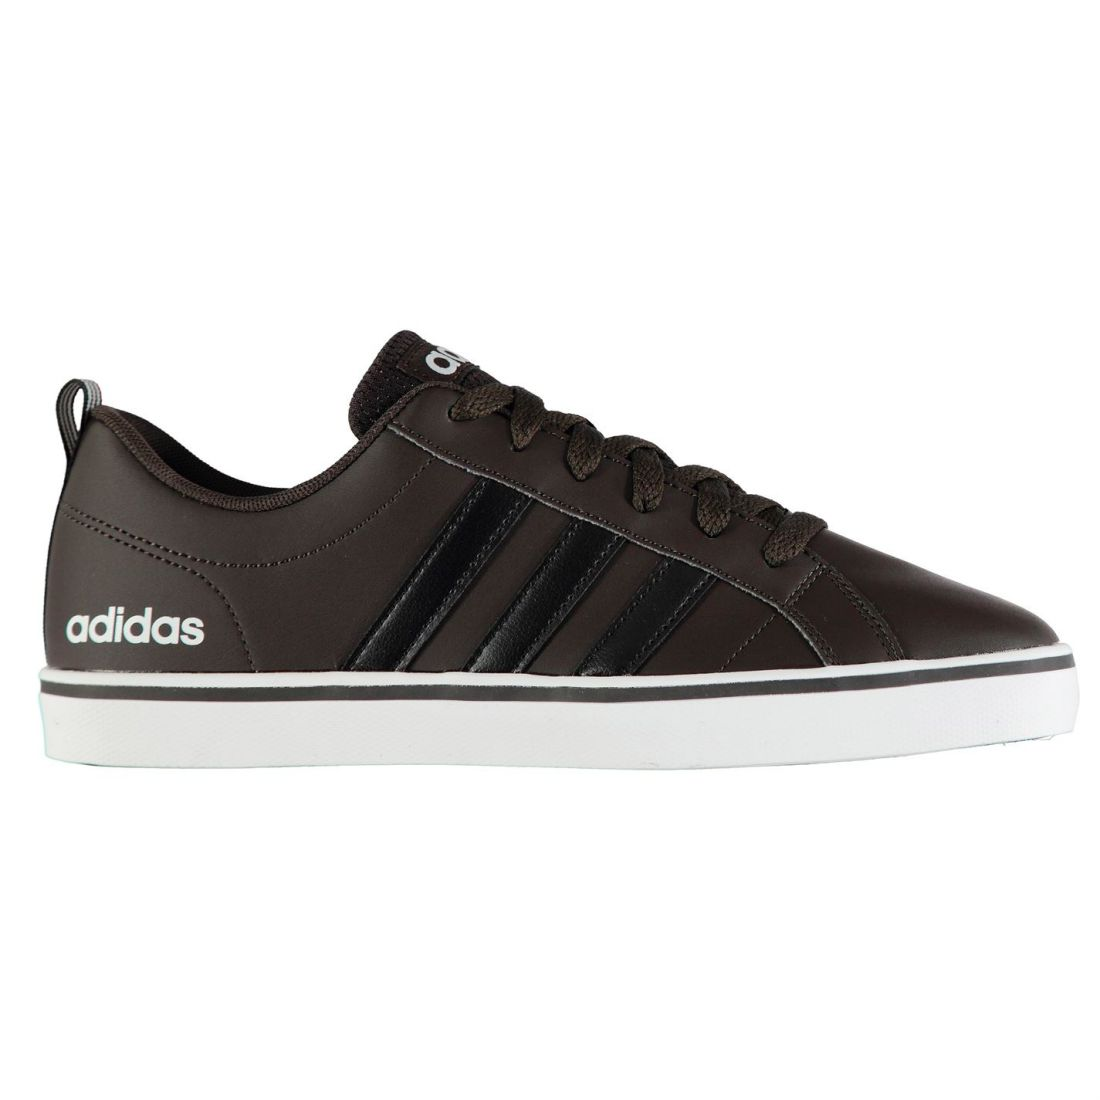 adidas Mens Pace VS Trainers Shoes Lace Up Tonal Stitching Stripe  ea8021504